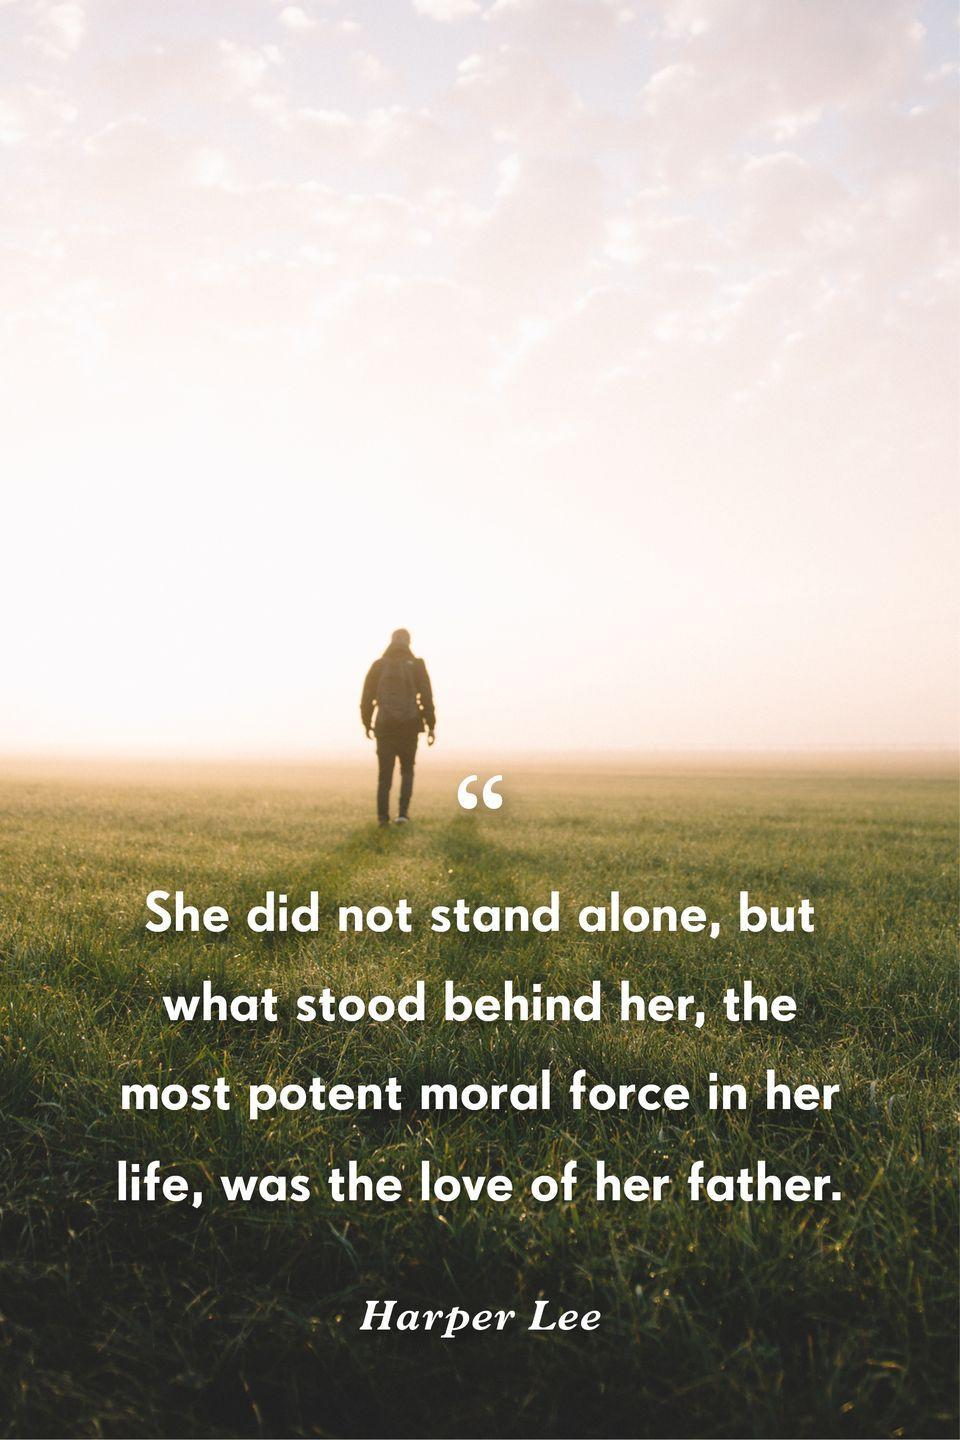 """<p>""""She did not stand alone, but what stood behind her, the most potent moral force in her life, was the love of her father.""""</p>"""